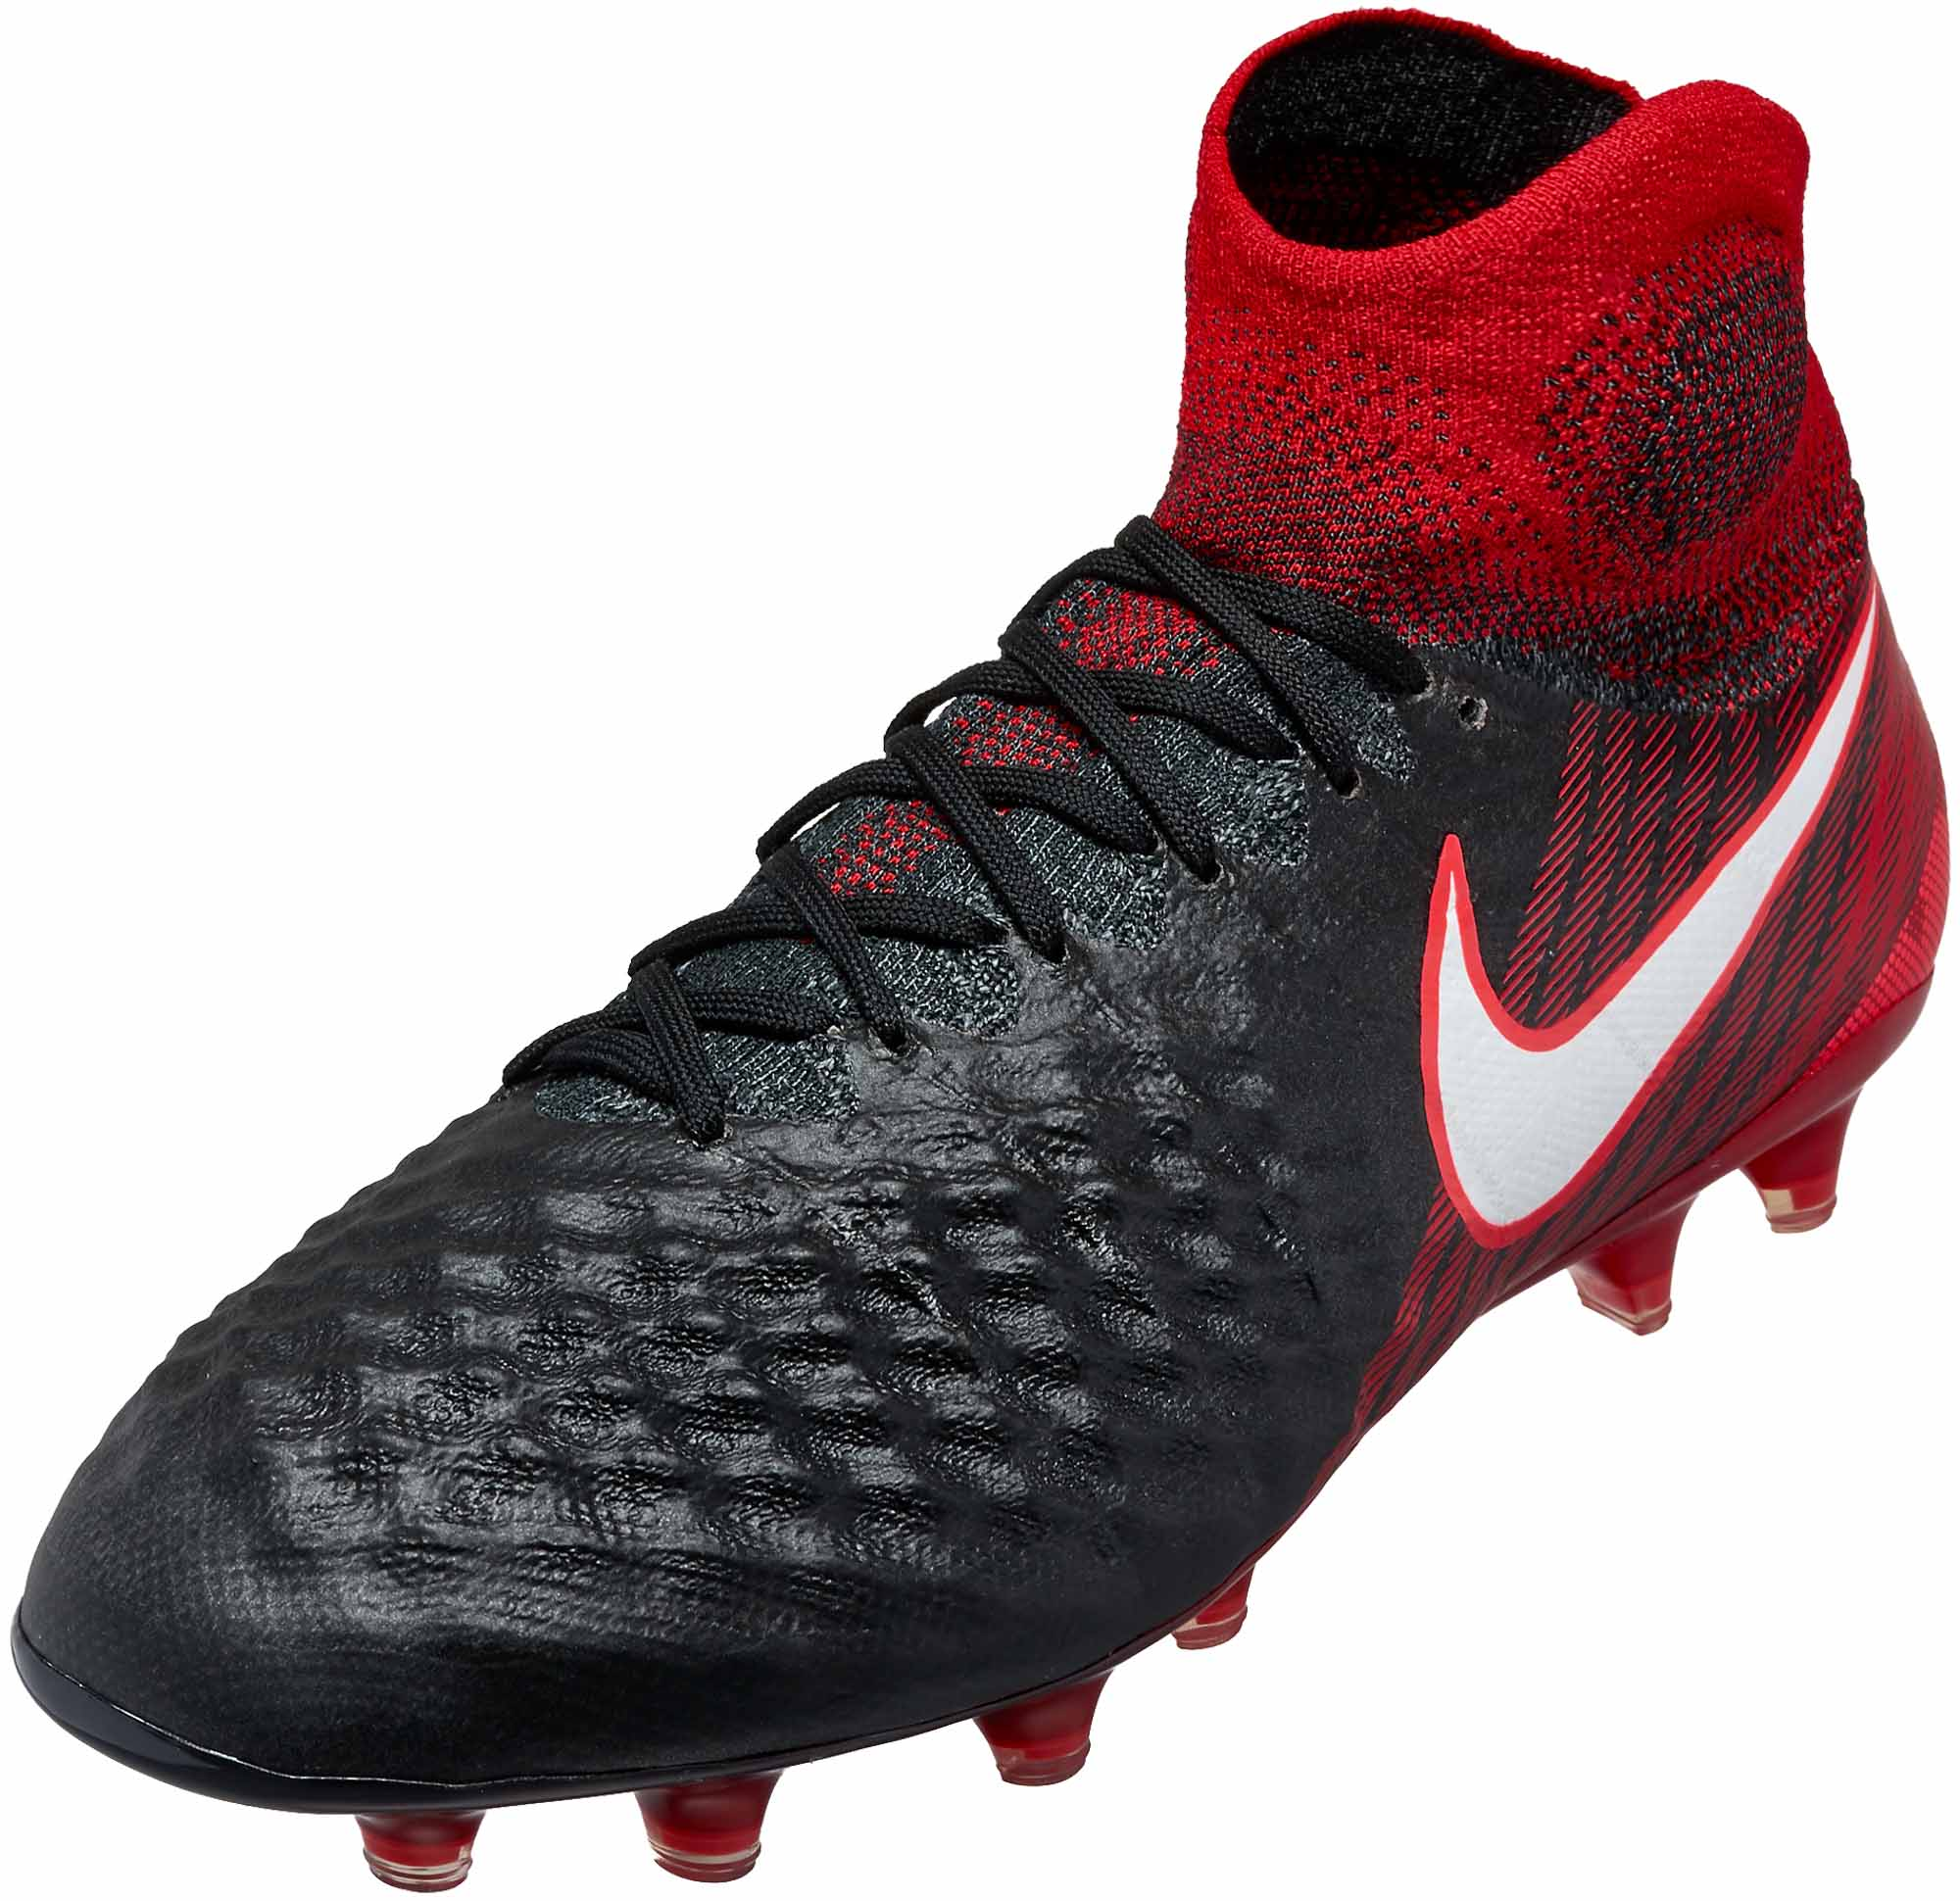 Nike Magista Obra II - Black Nike Obras